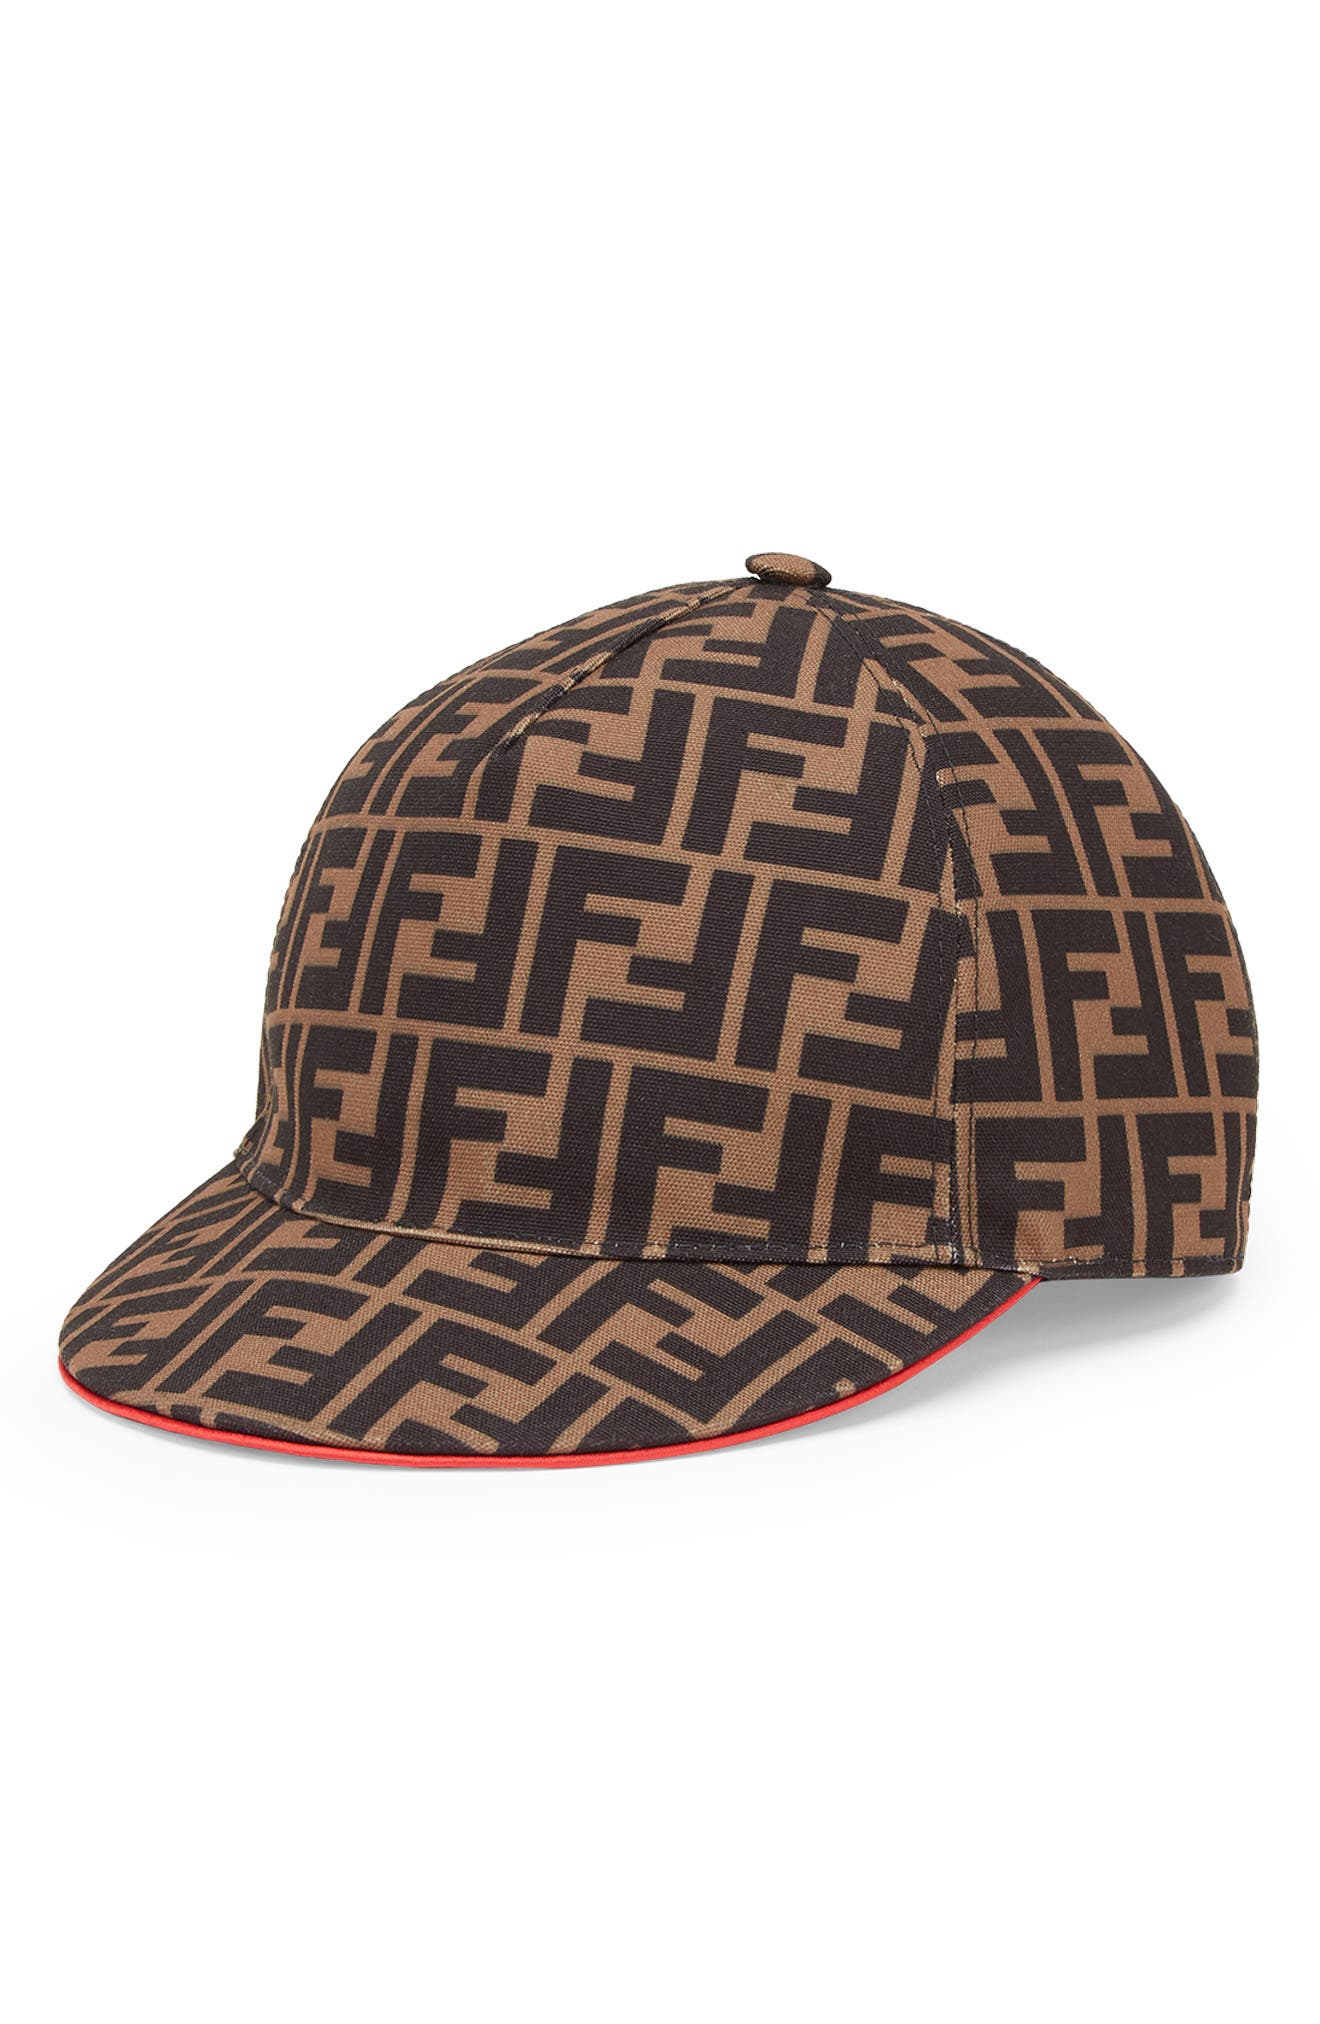 Fendirama Logo Baseball Cap,                             Main thumbnail 1, color,                             200